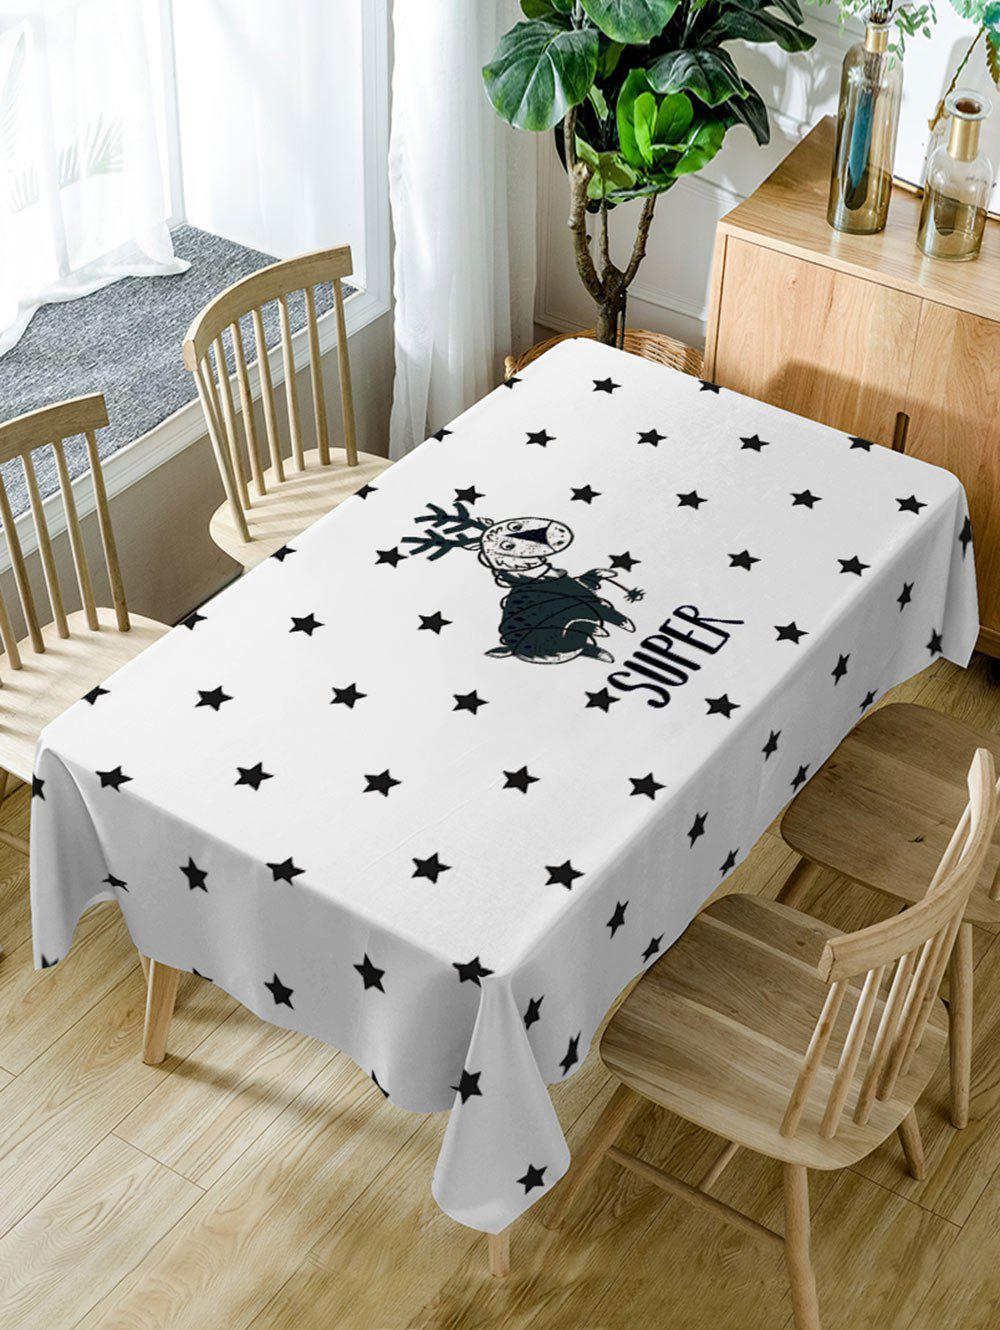 Deer and Stars Print Waterproof Table Cloth - WHITE W54 INCH * L54 INCH